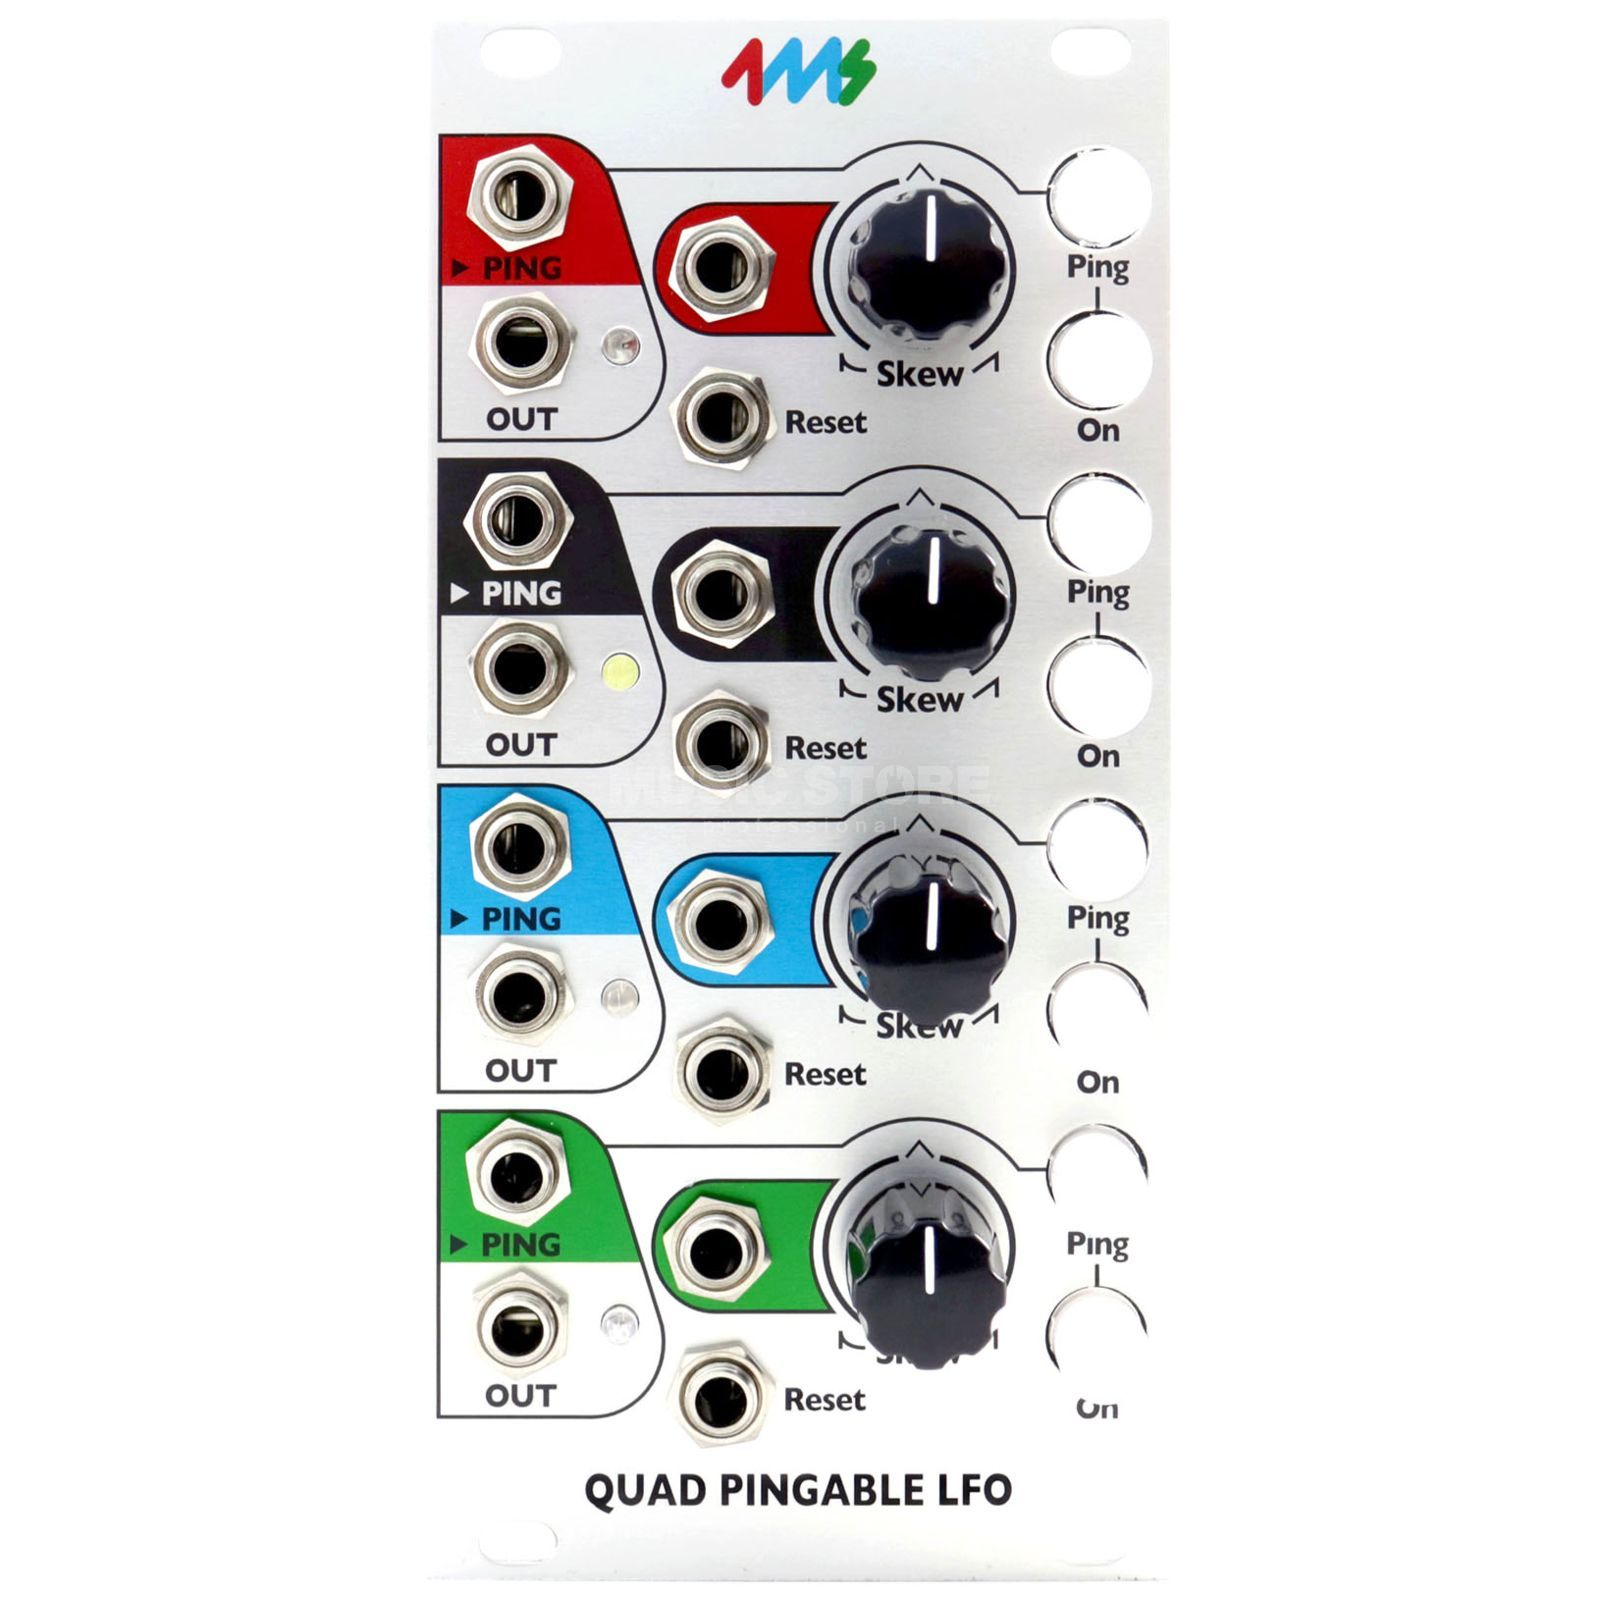 4ms Quad Pingable LFO Product Image